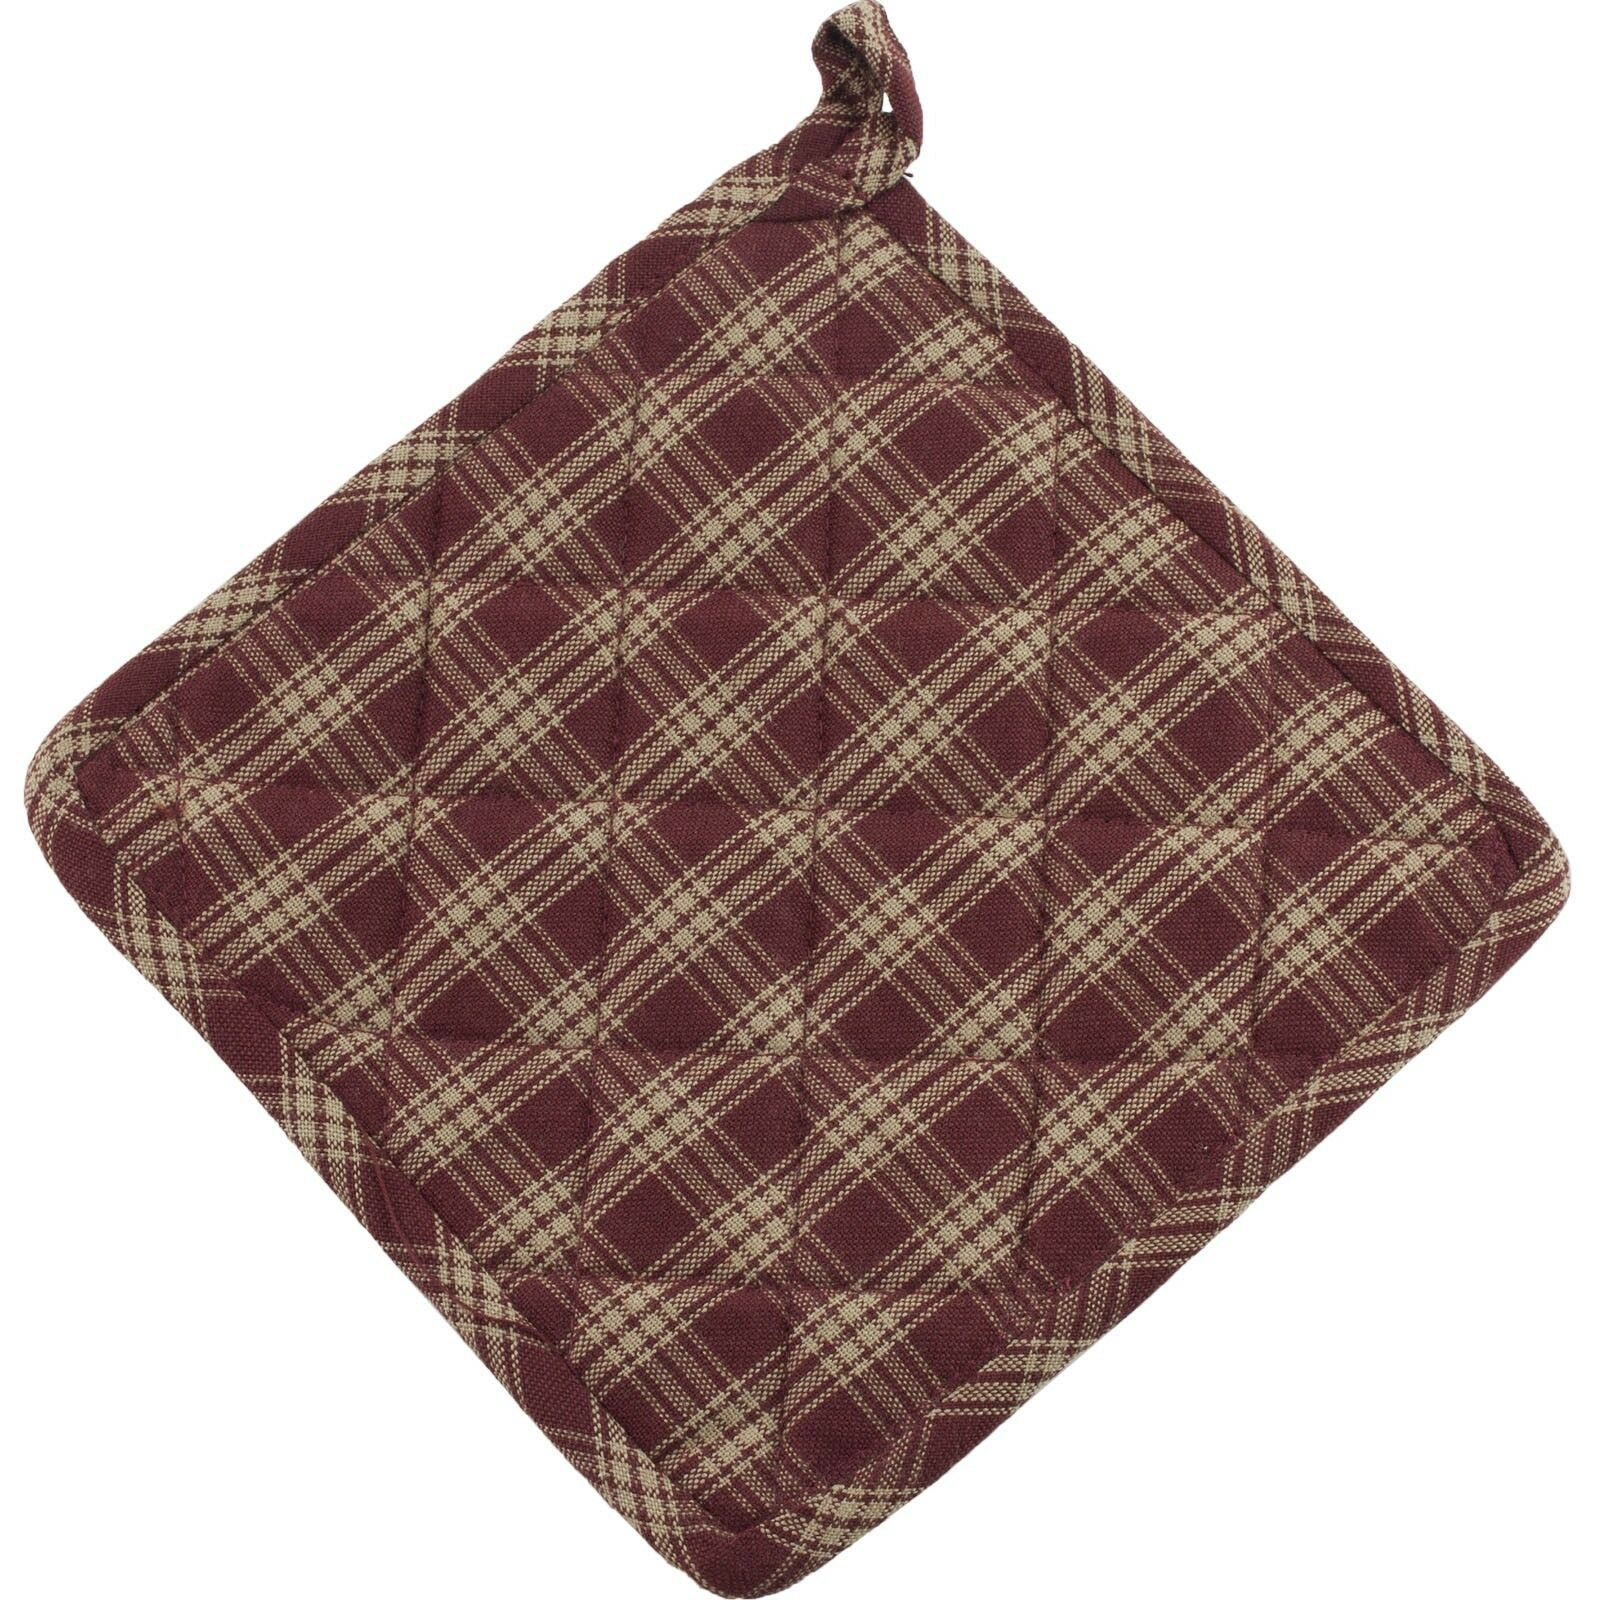 Kitchen Burgundy Brown High Country By Park Designs Dishtowel Set of 2